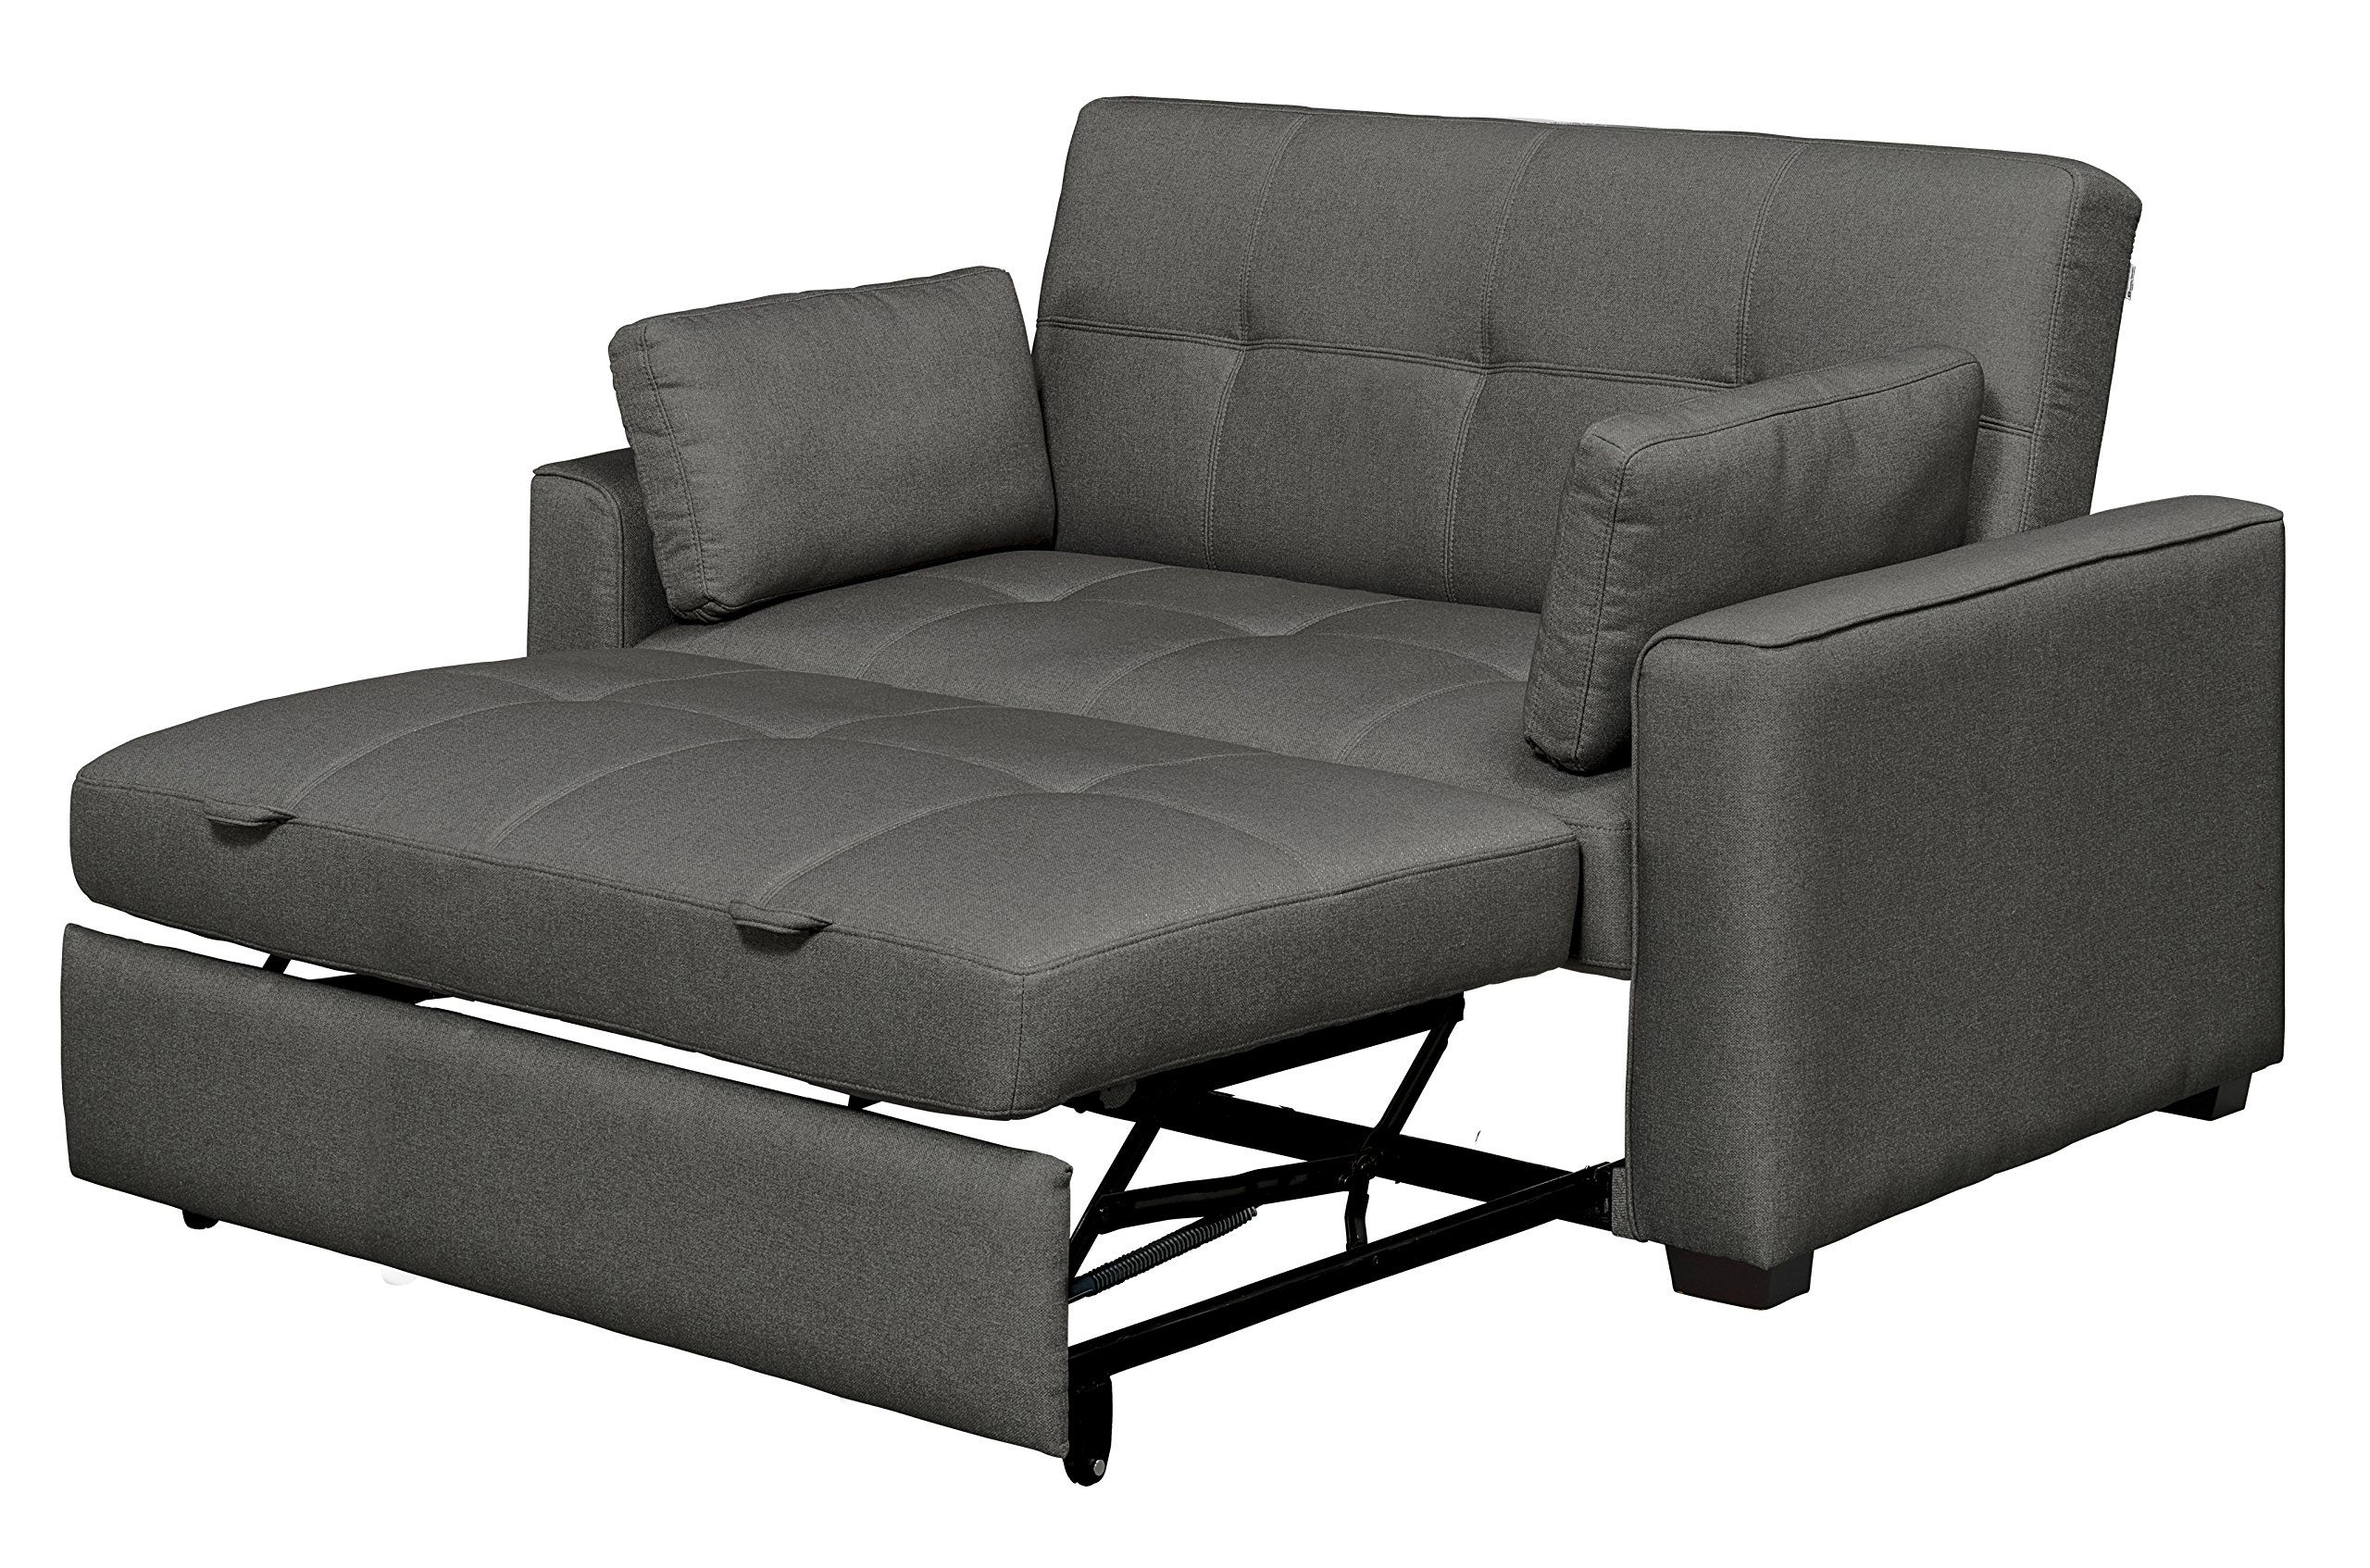 Wondrous Mechali Products Furniture Serta Sofa Sleeper Convertible Home Interior And Landscaping Ologienasavecom